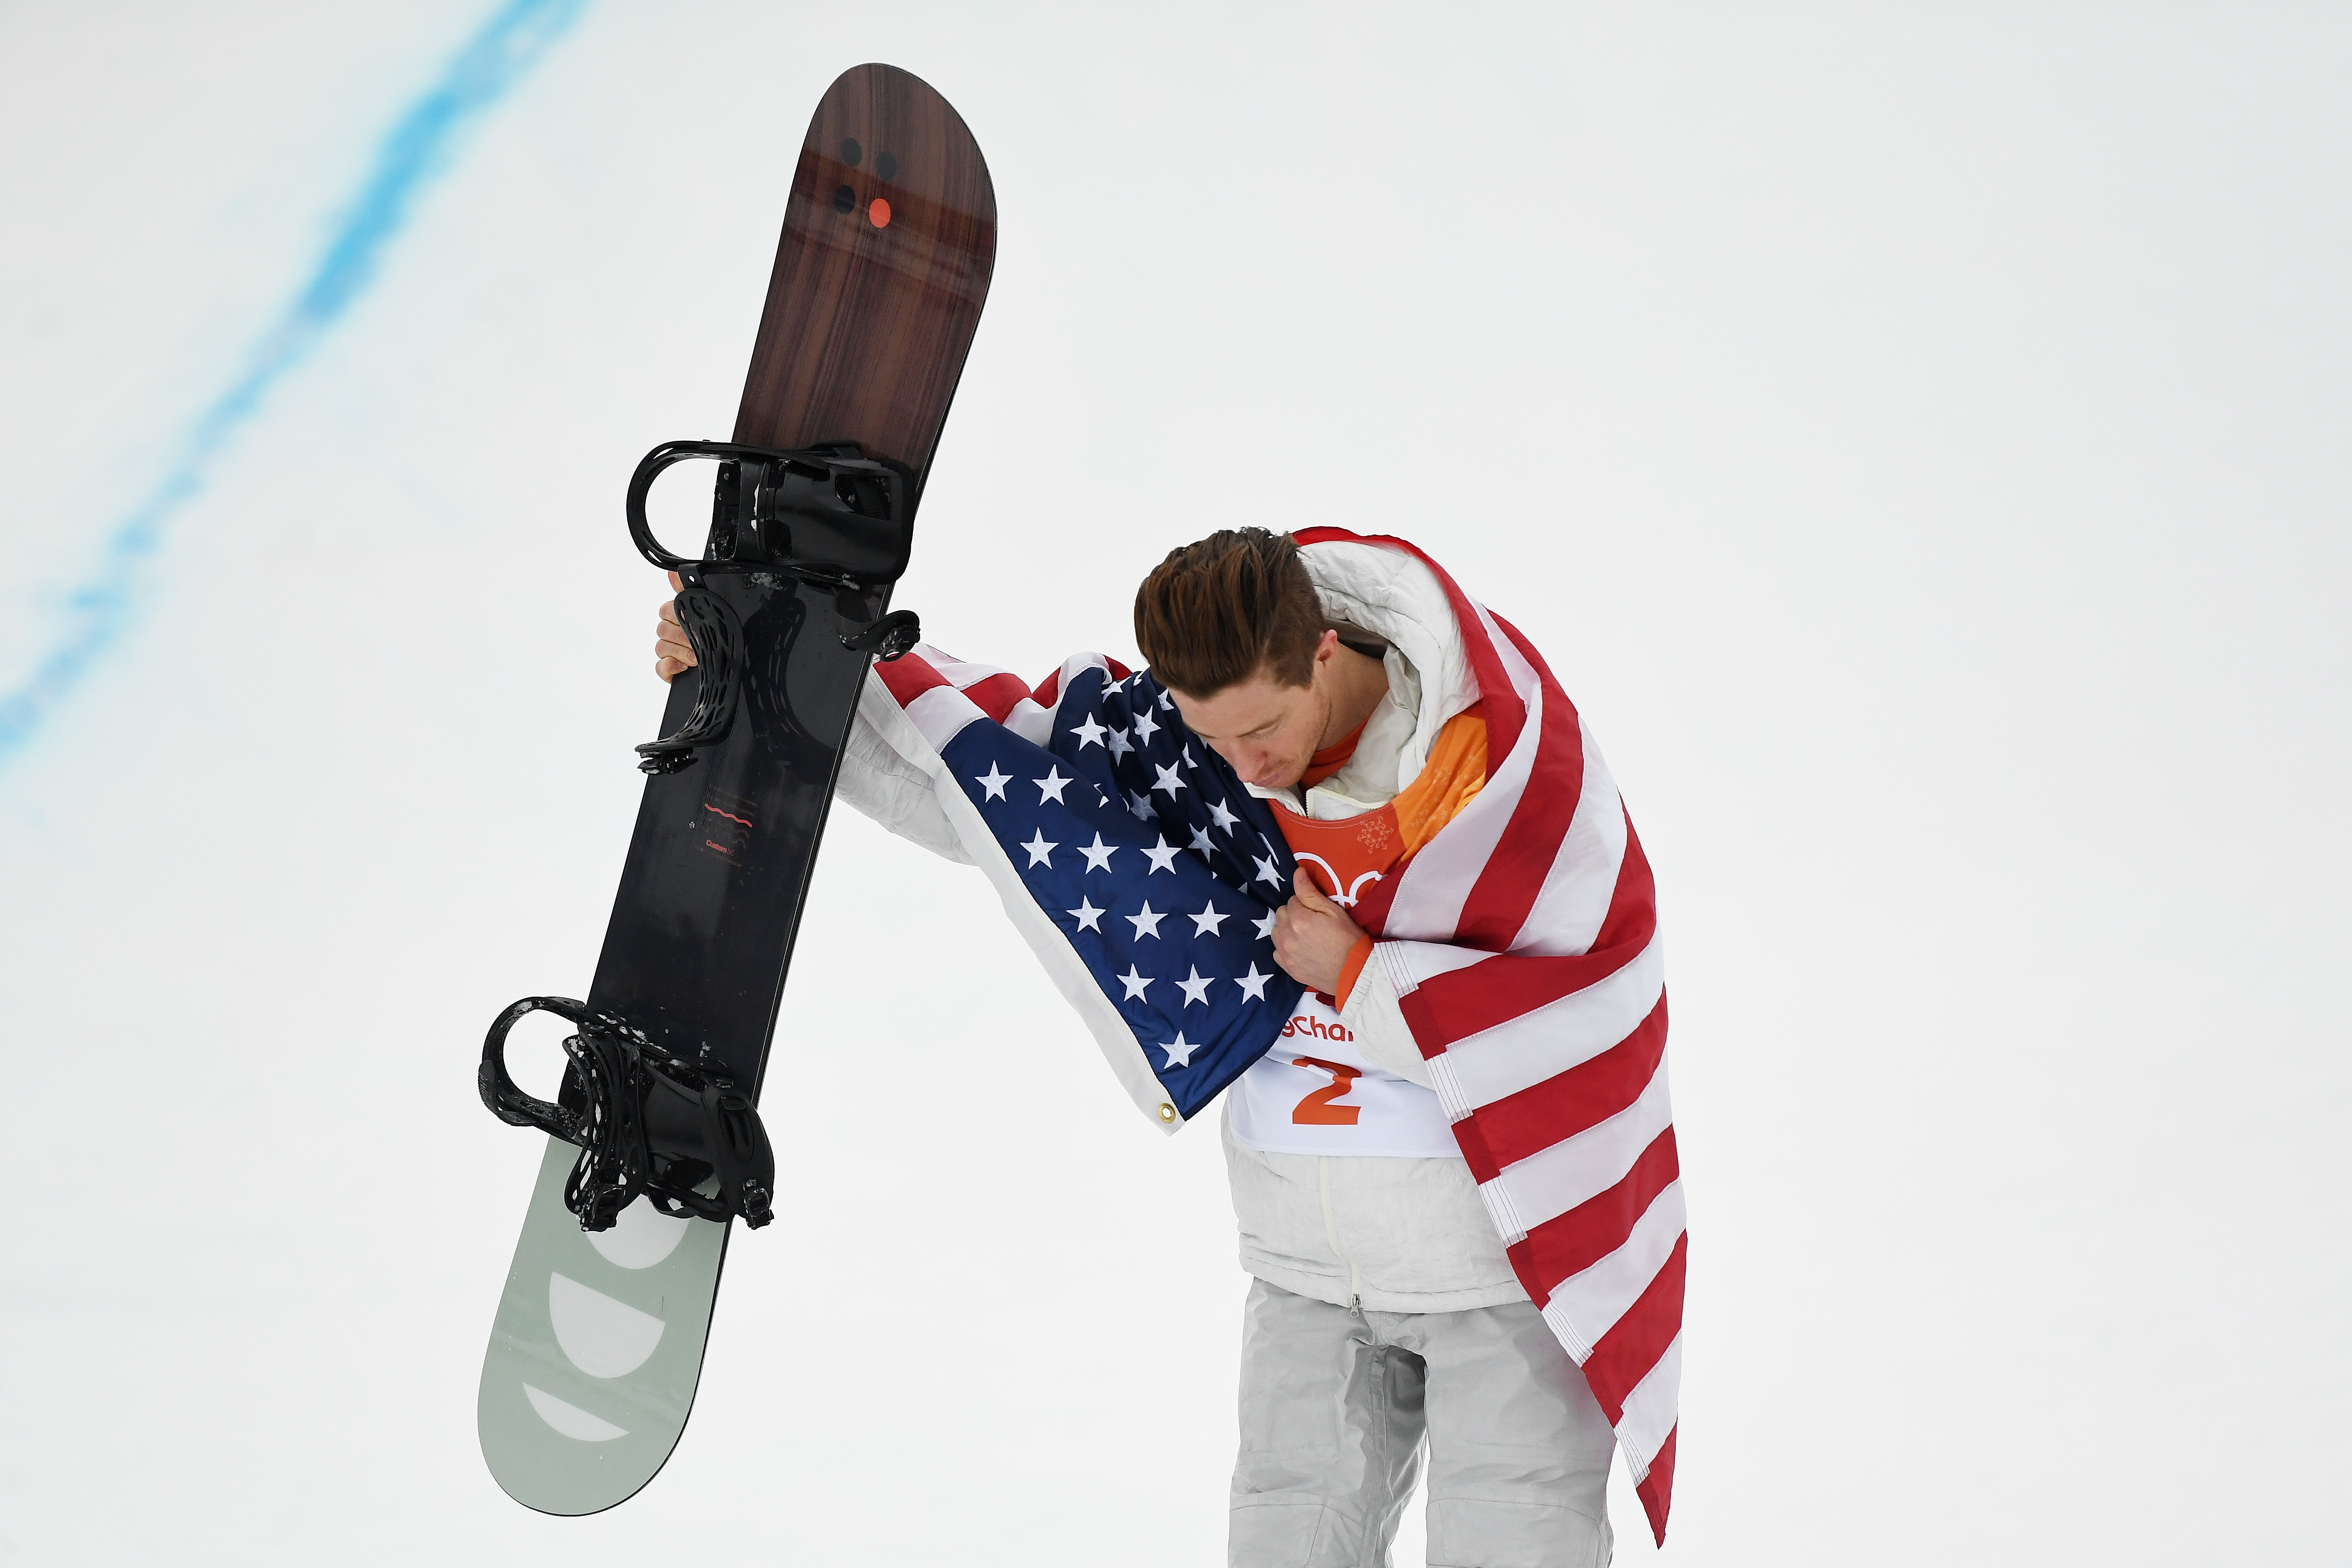 Gold medalist Shaun White of the United States poses during the victory ceremony for the Snowboard Men's Halfpipe Final on day five of the Winter Olympics in Pyeongchang-gun, South Korea, on Feb. 14, 2018.